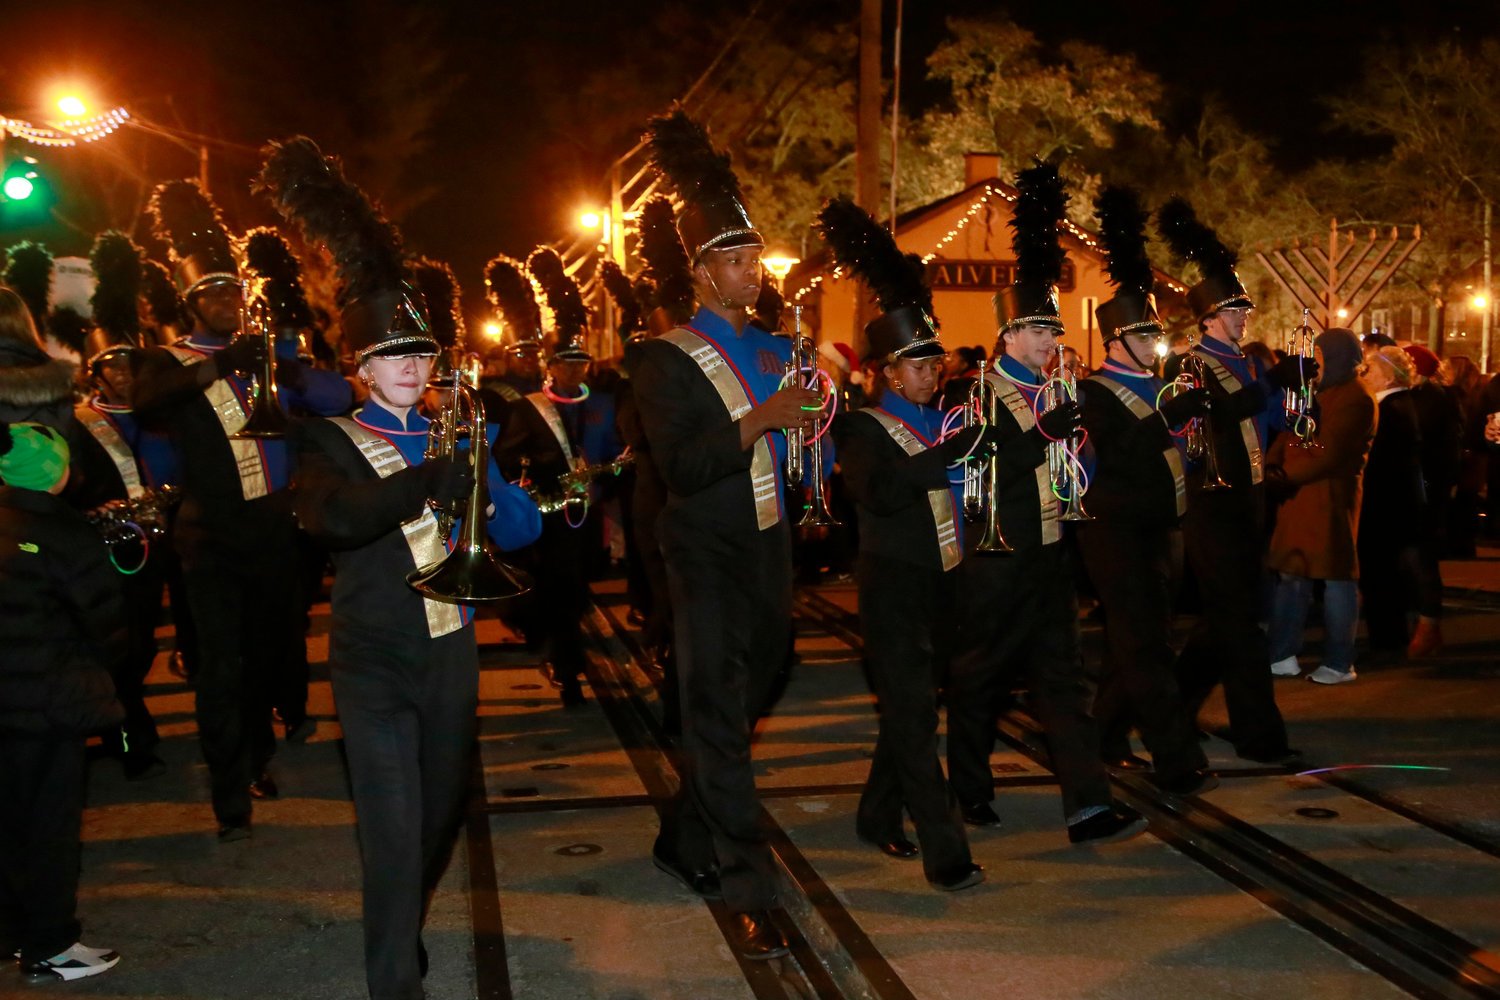 Malverne High School's marching band made its way down Hempstead Avenue.